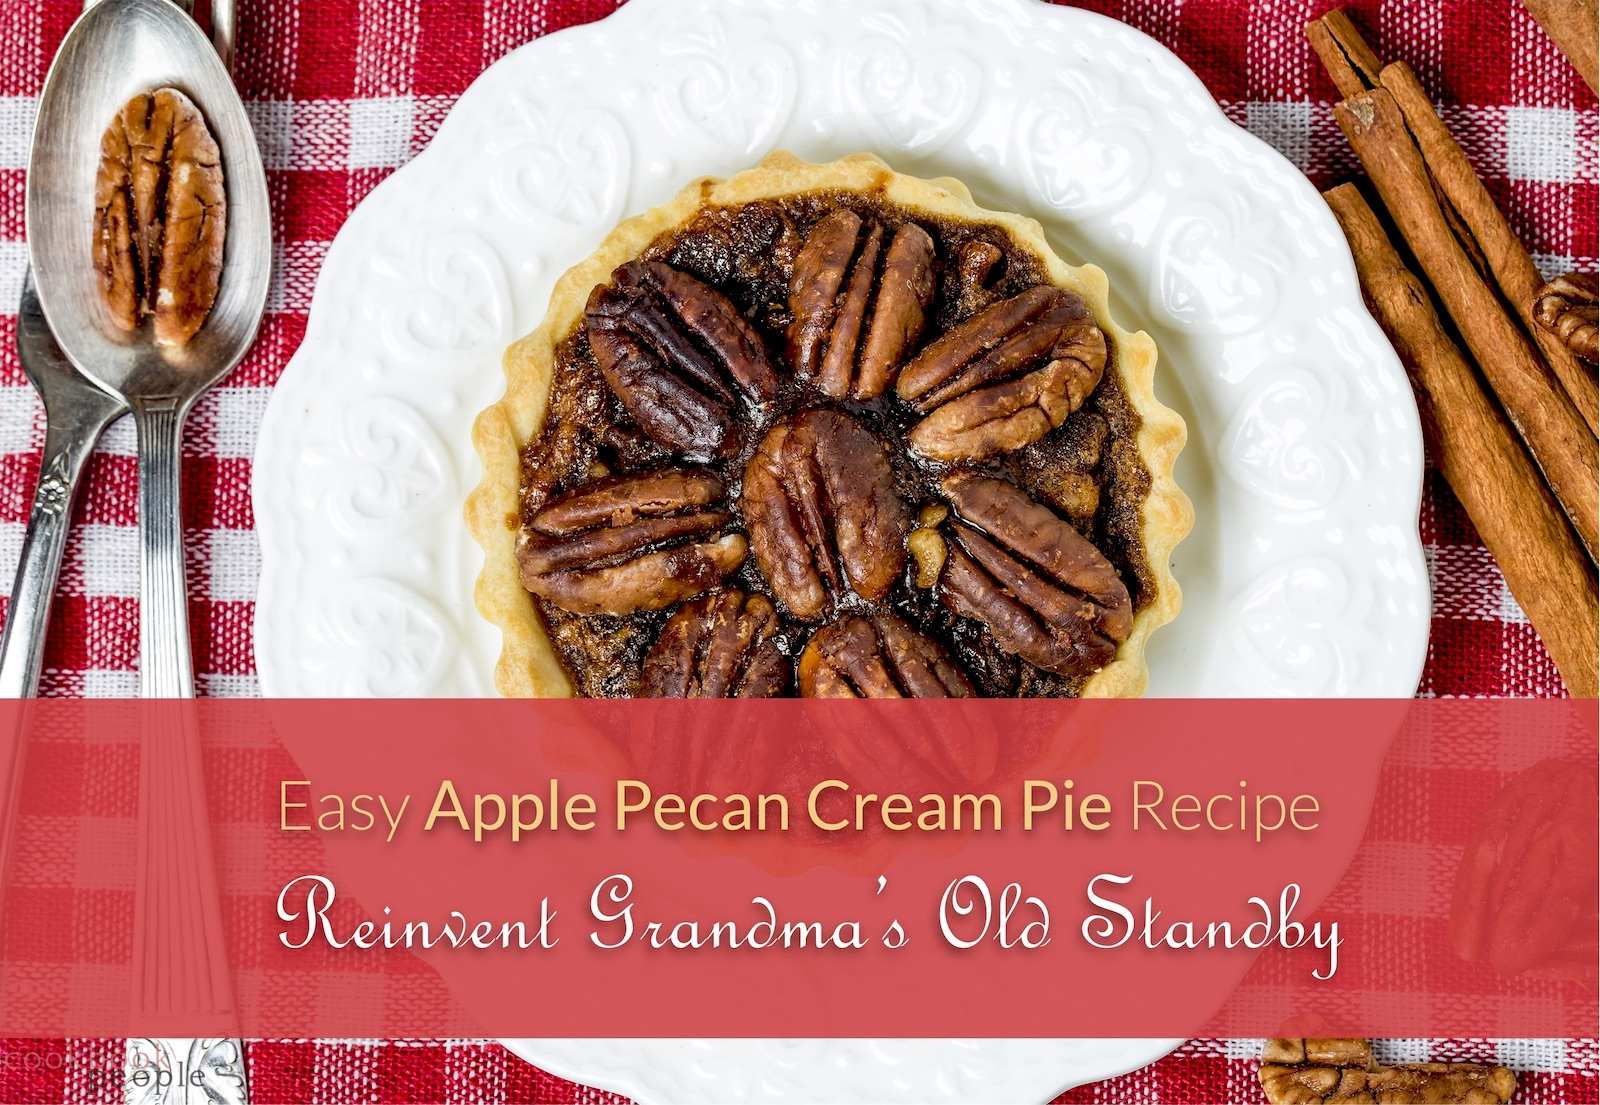 pecan pie on white plate with cutlery and cinnamon sticks on red check tablecloth, overlaid with text: Easy Apple Pecan Cream Pie Recipe, Reinvent Grandma's Old Standby